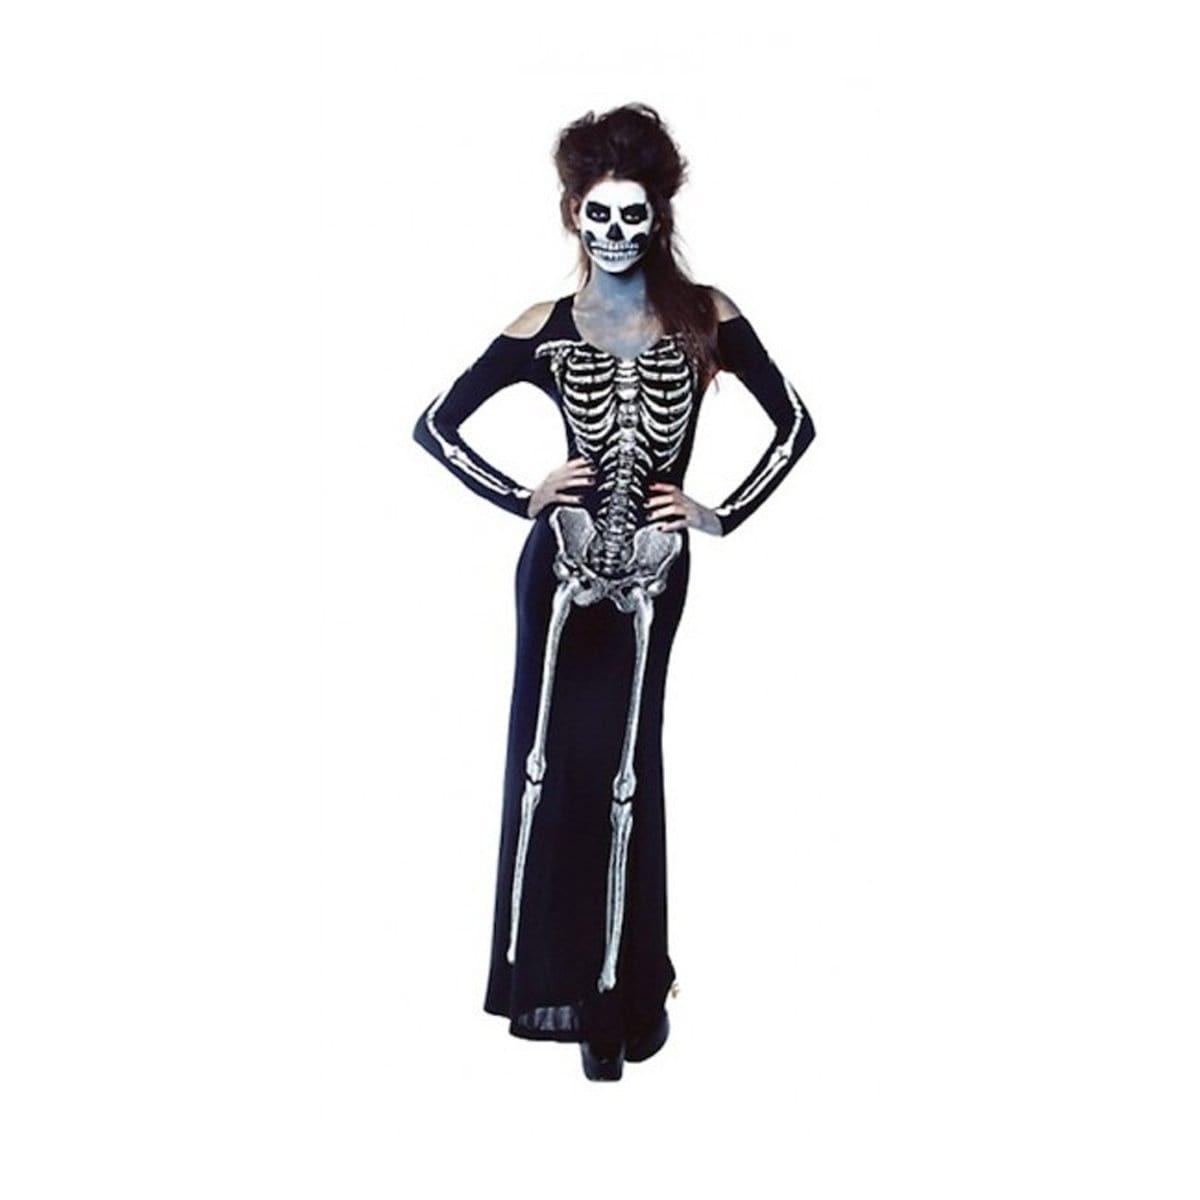 COSTUME SKELETON DRESS LADIES - Christmas World